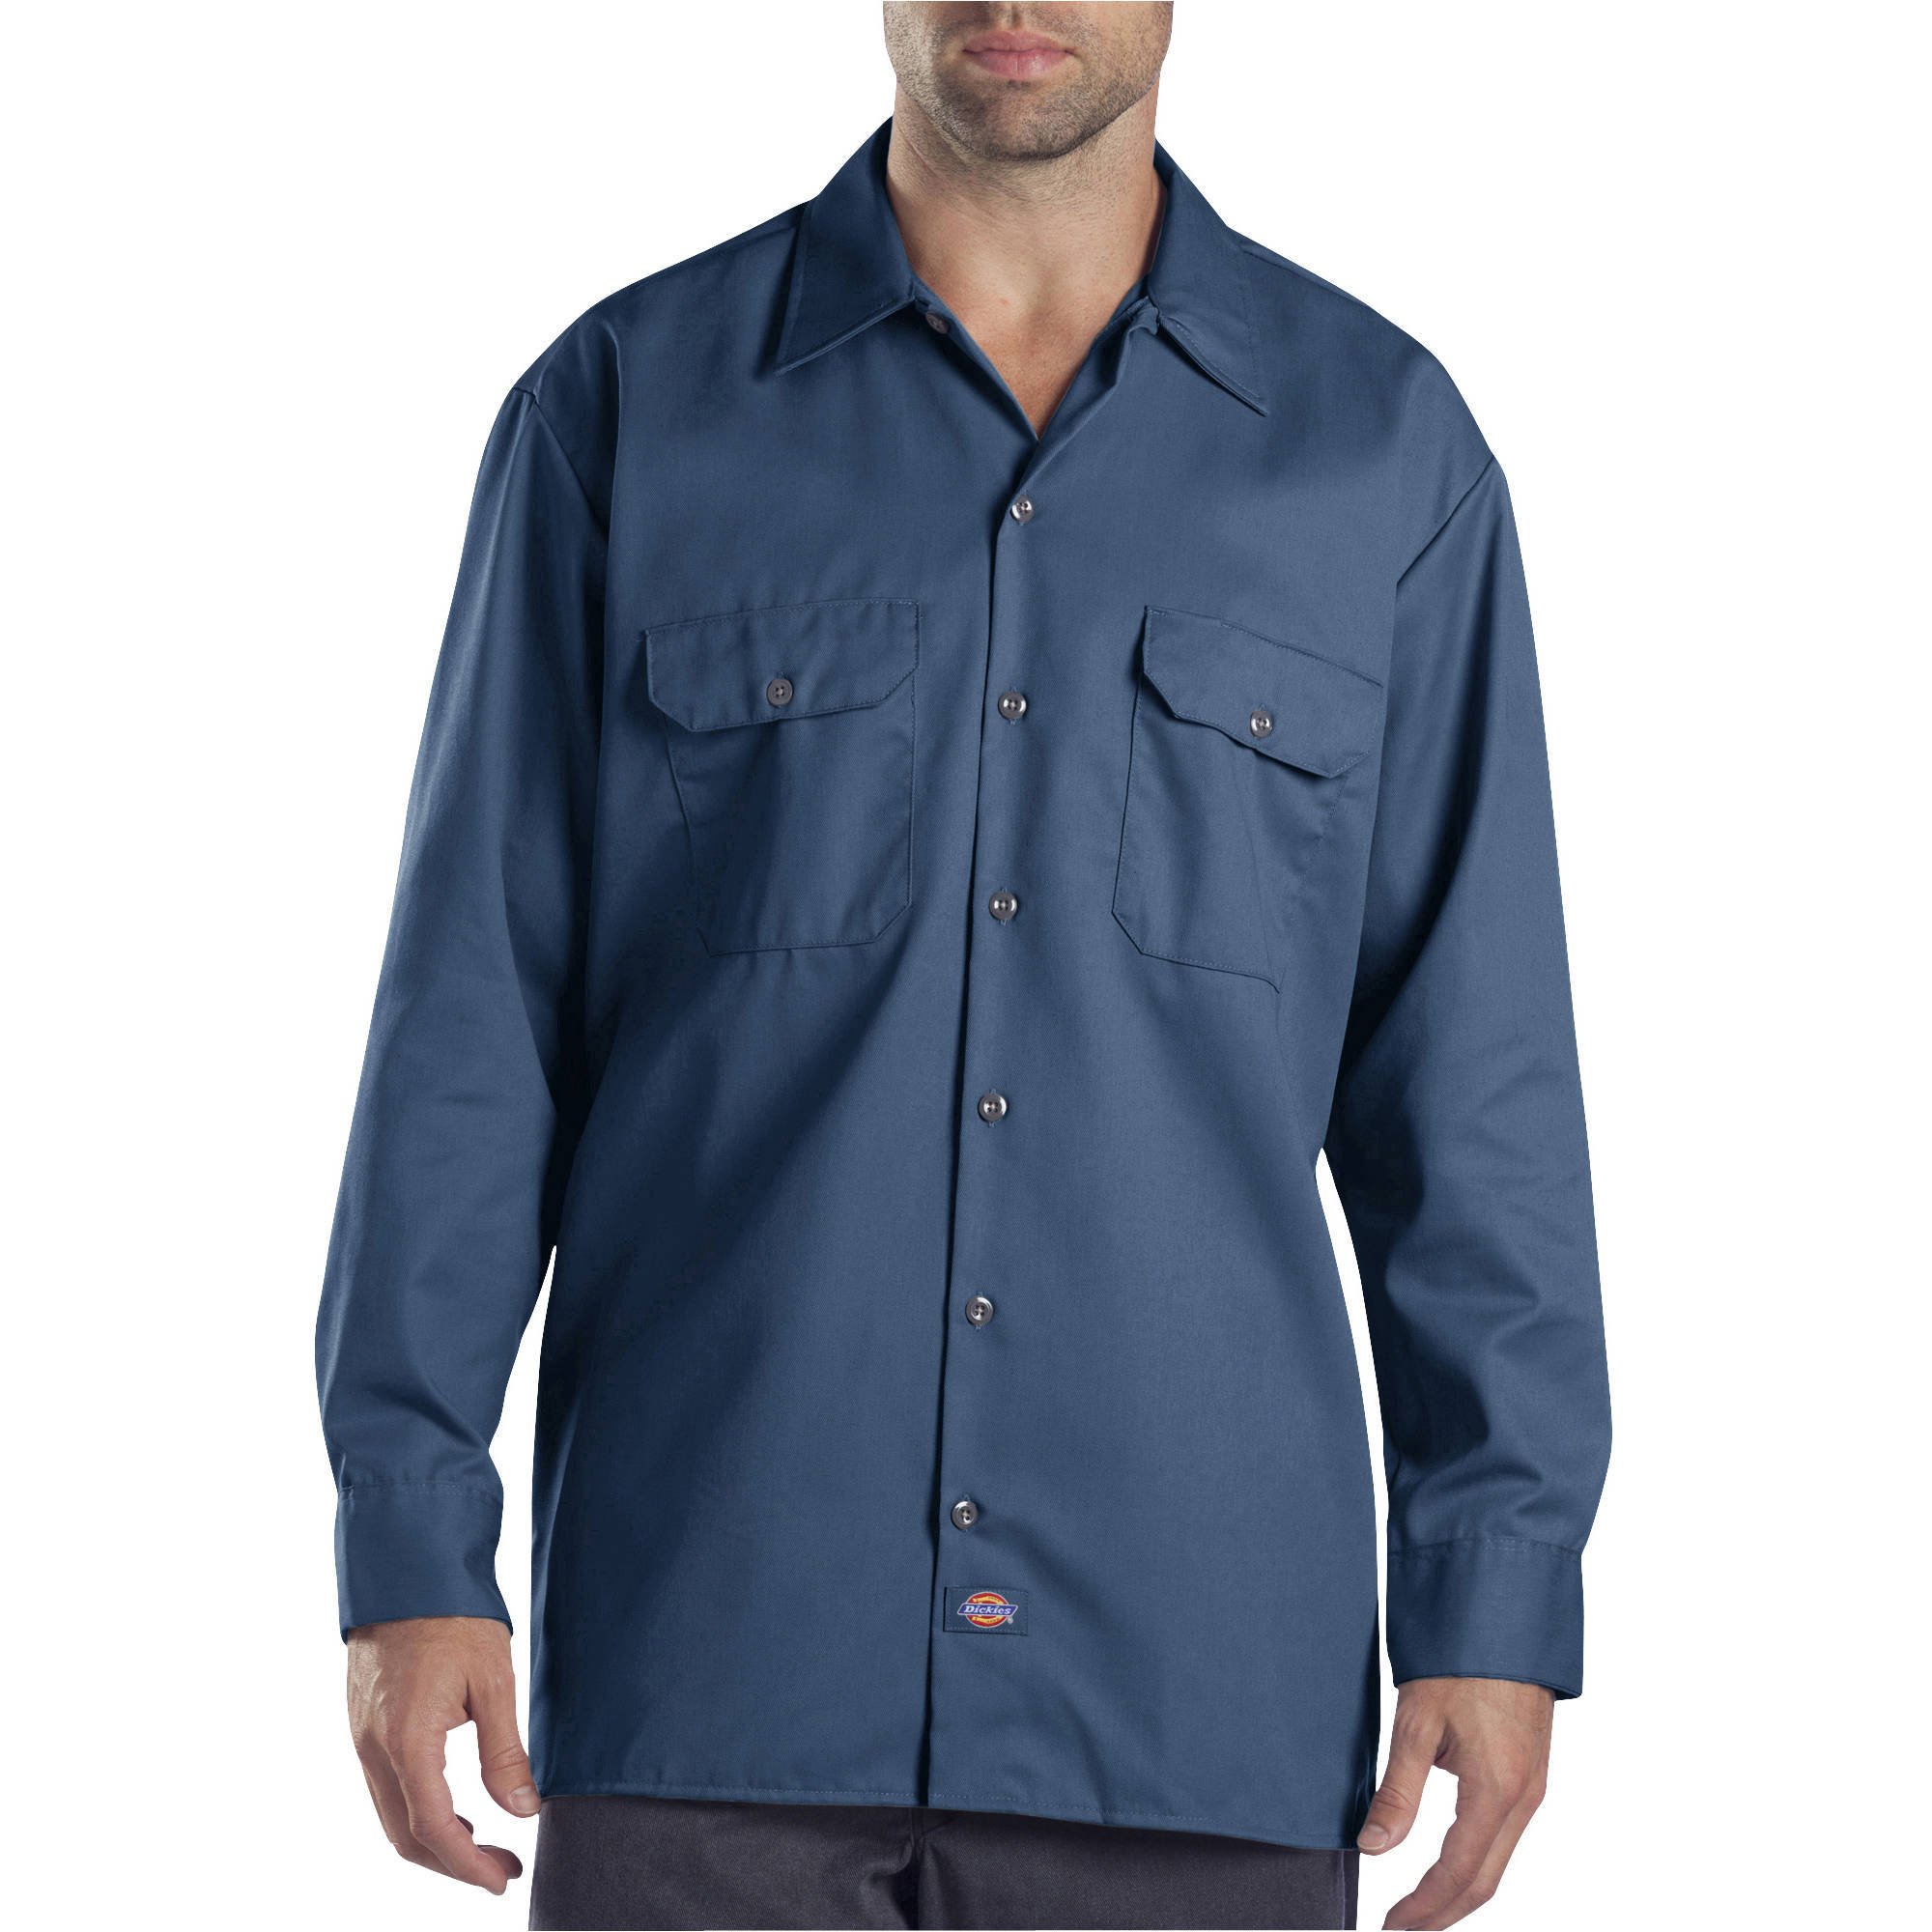 Dickies Big and Tall Men's Long Sleeve Twill Work Shirt